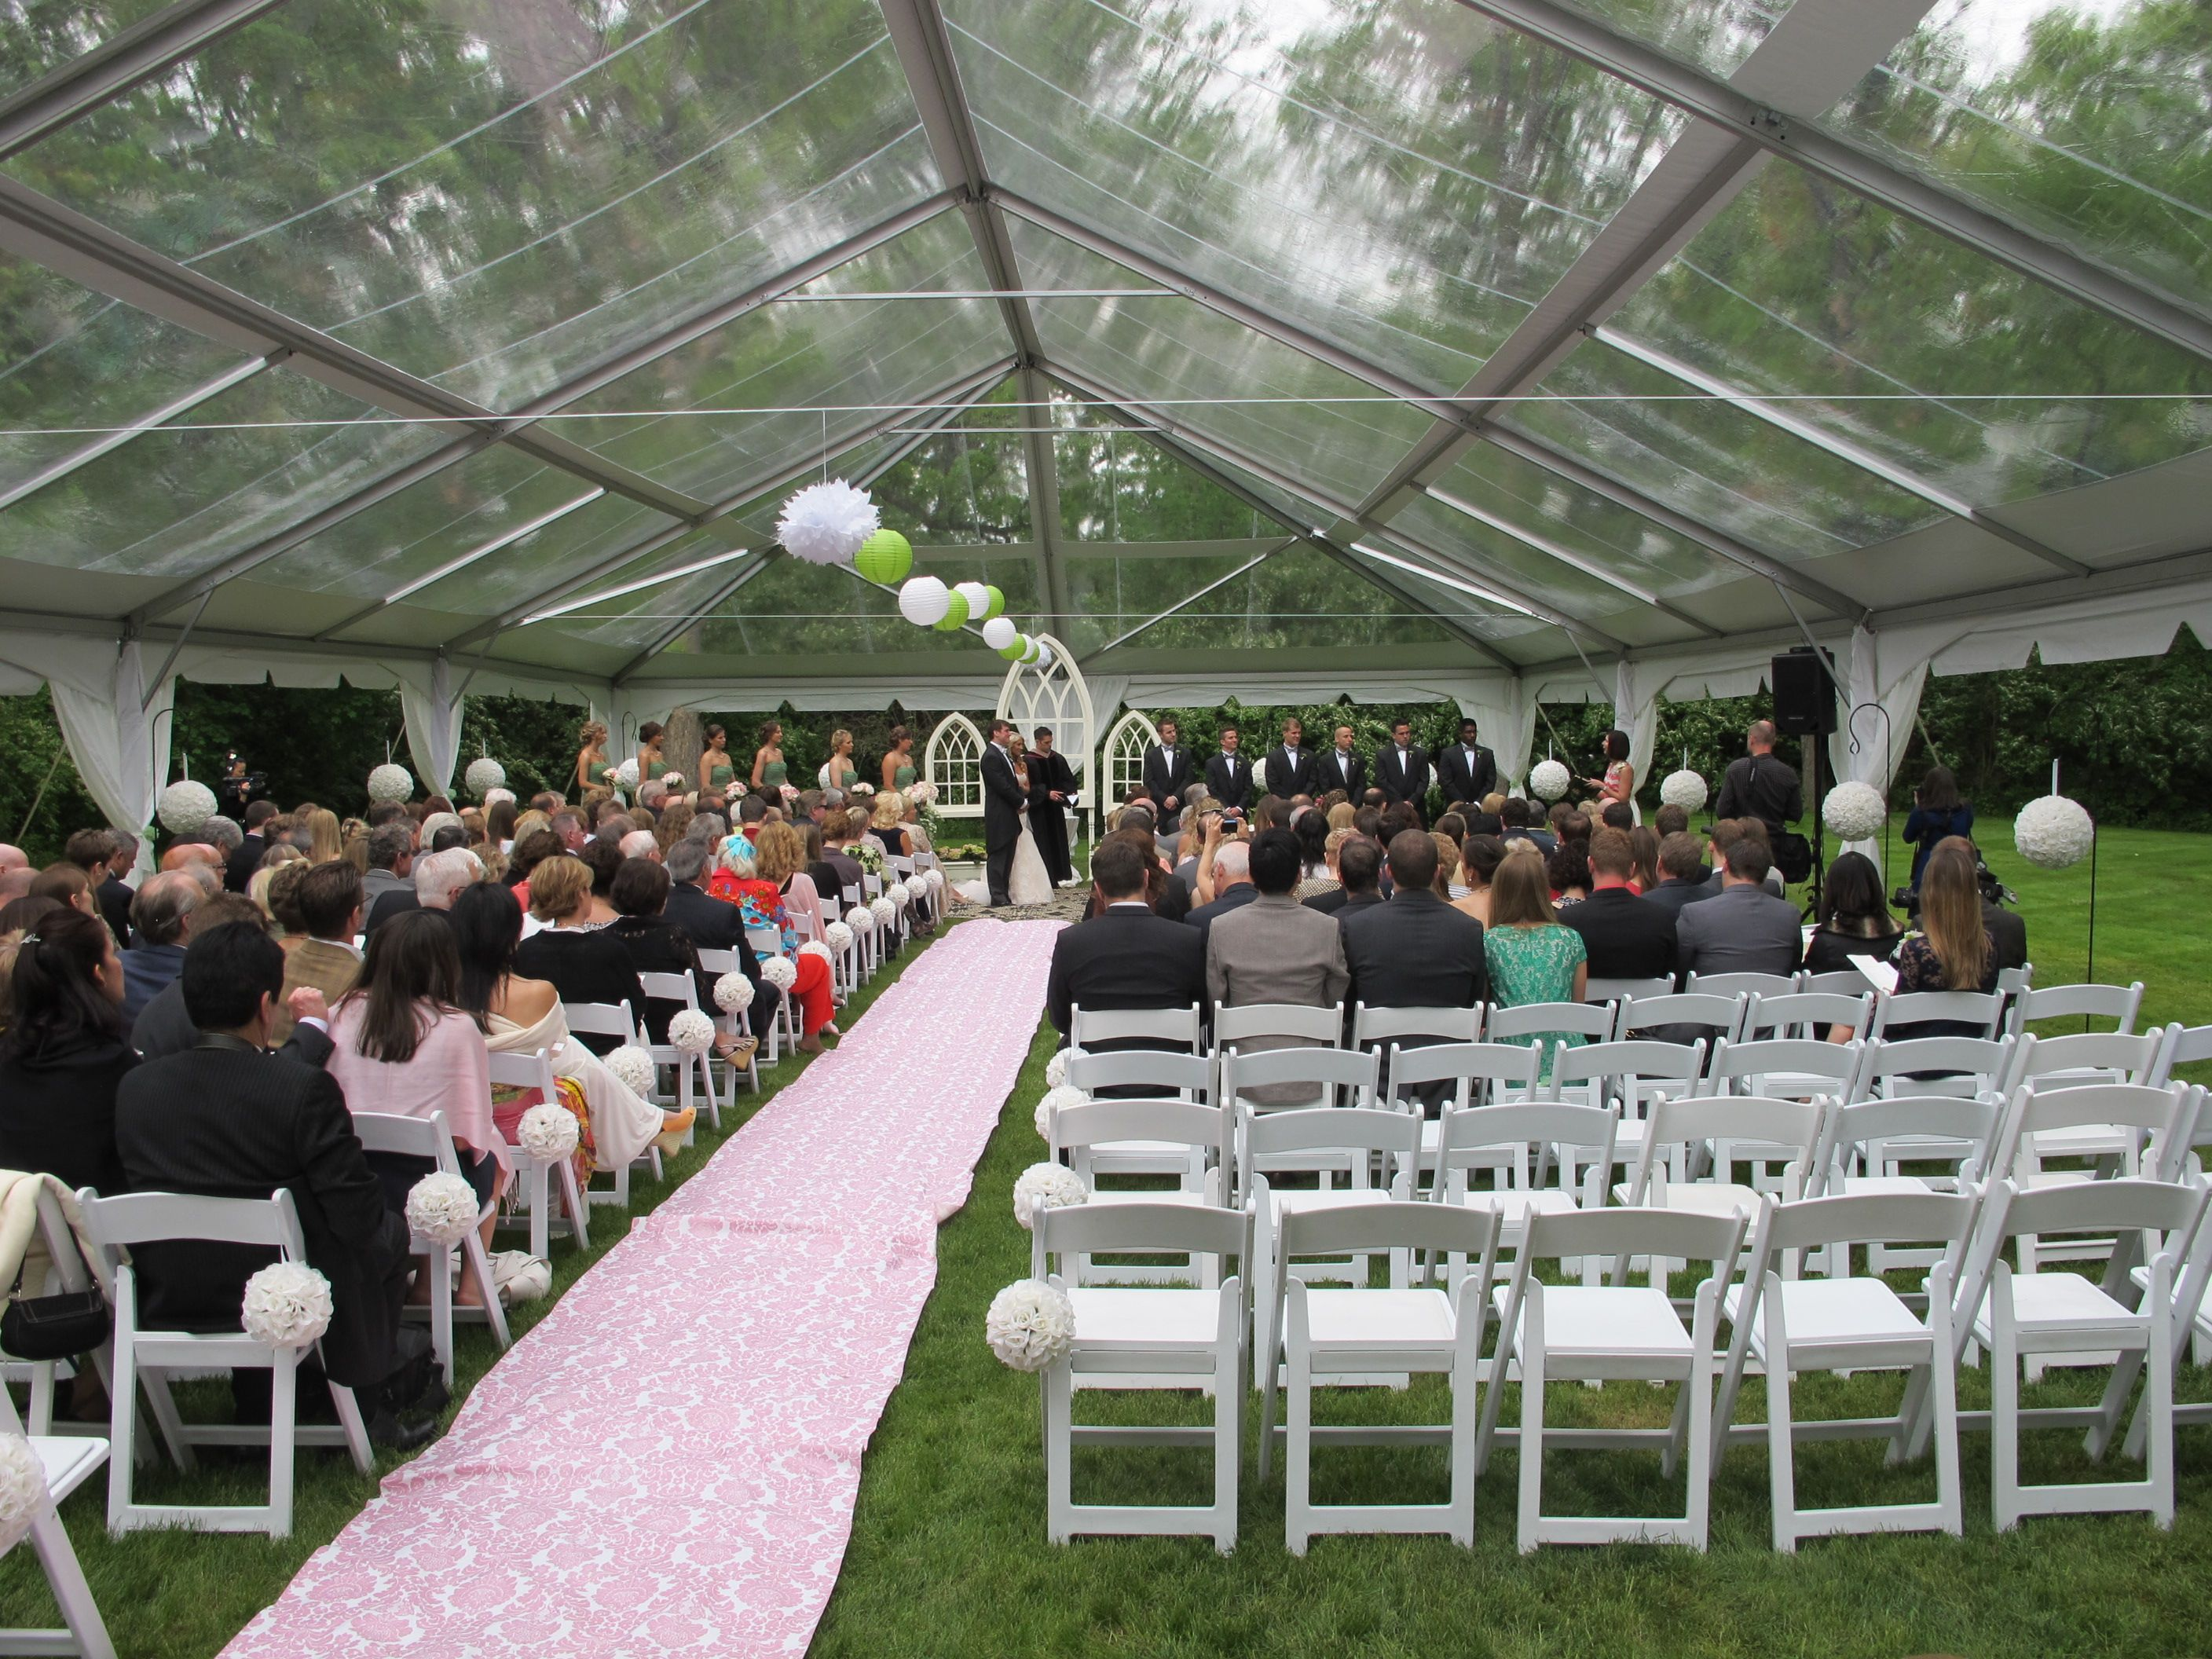 Tent Rentals and Wedding Tent Rentals around Chicagoland : cost of wedding tent - memphite.com